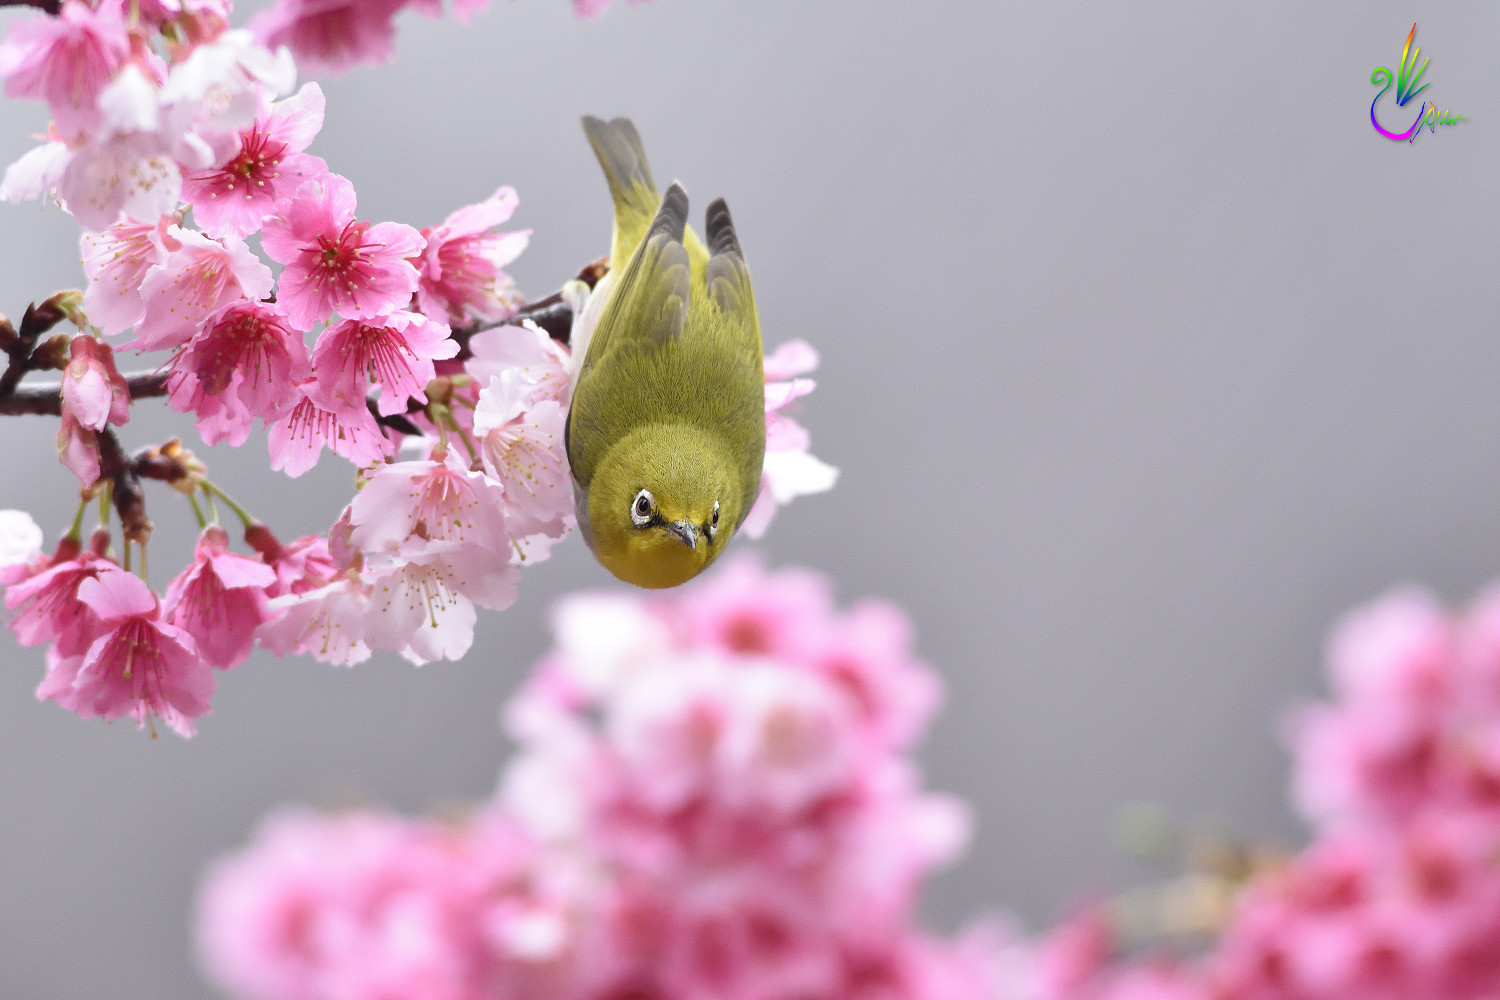 Sakura_White-eye_1538